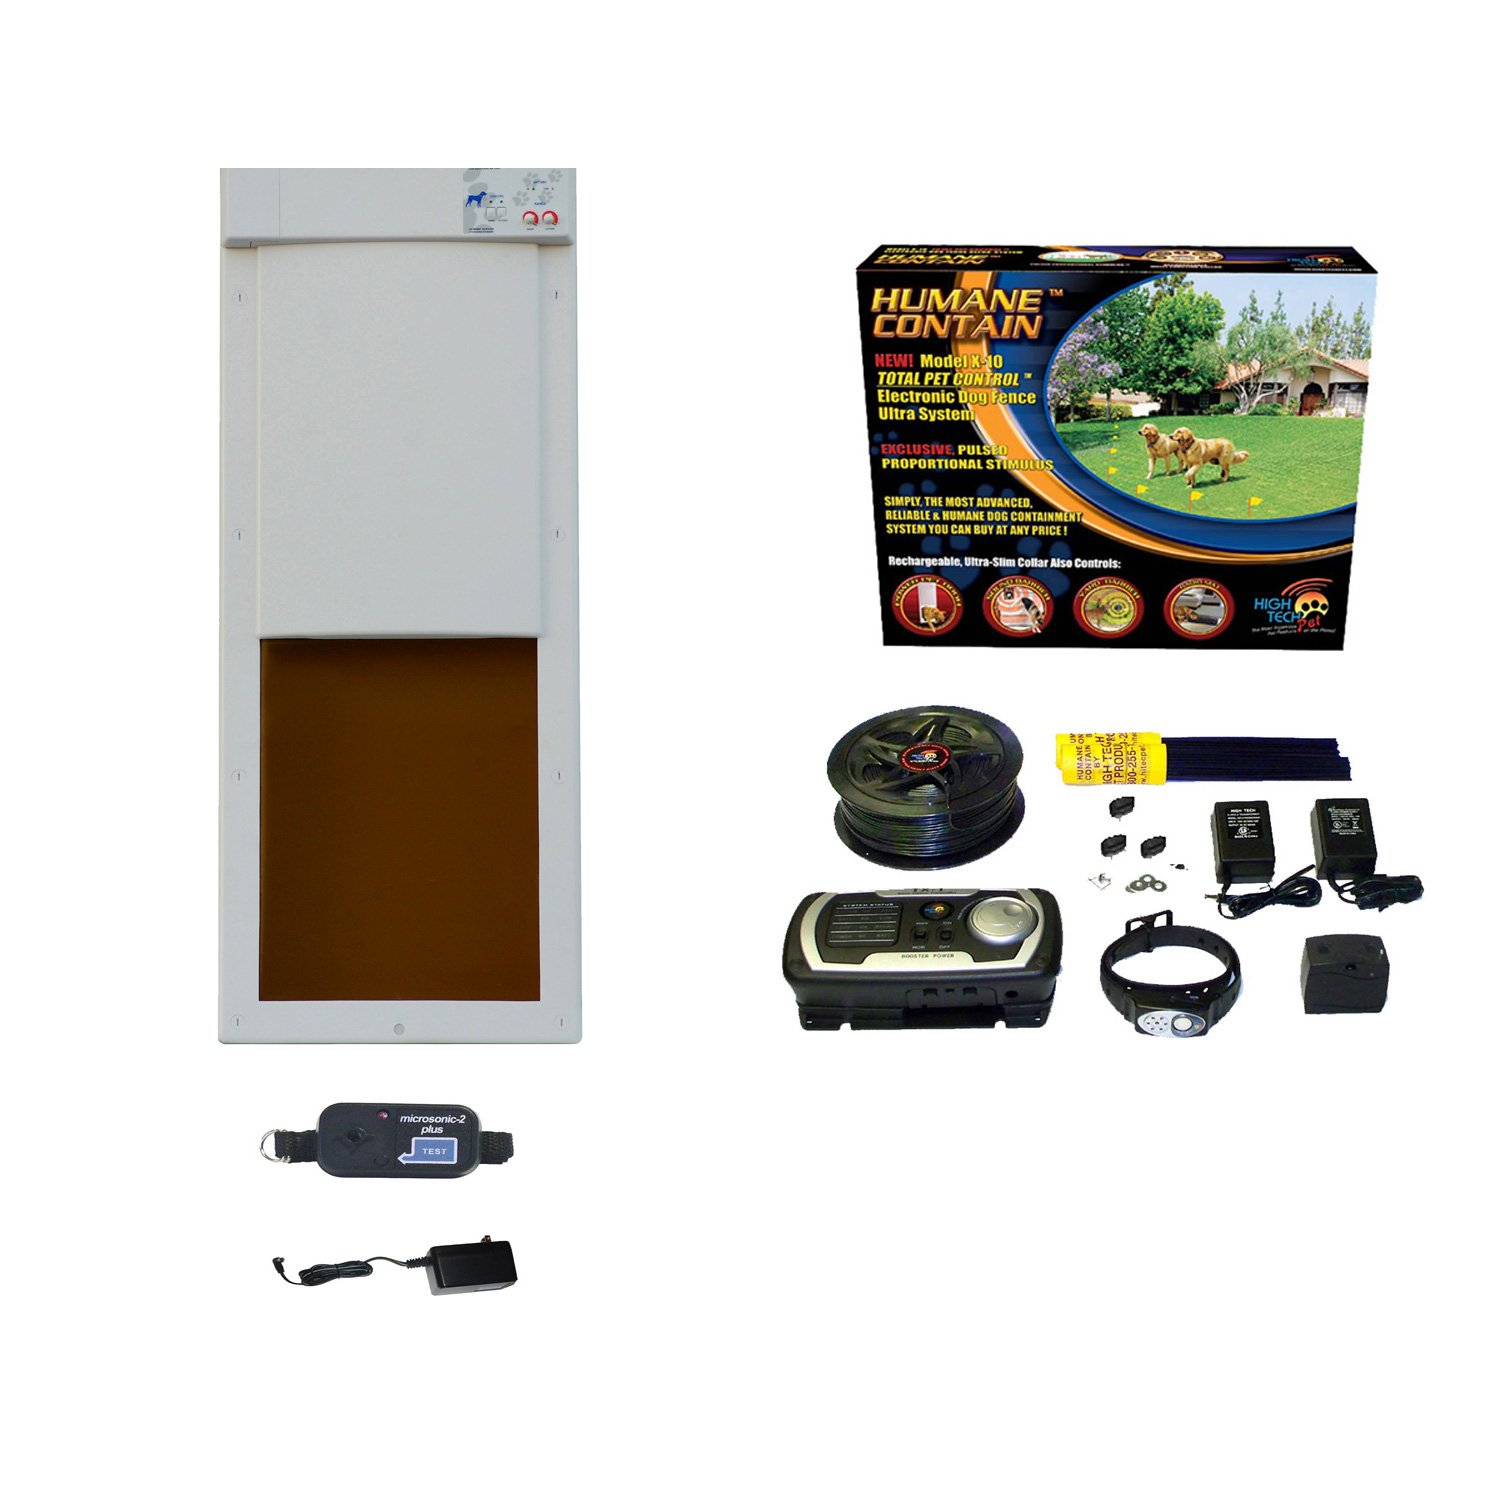 High Tech Pet Humane Contain X 10 In Ground Pet Fencing System With Power  Pet PX 2 Pet Door | Petco